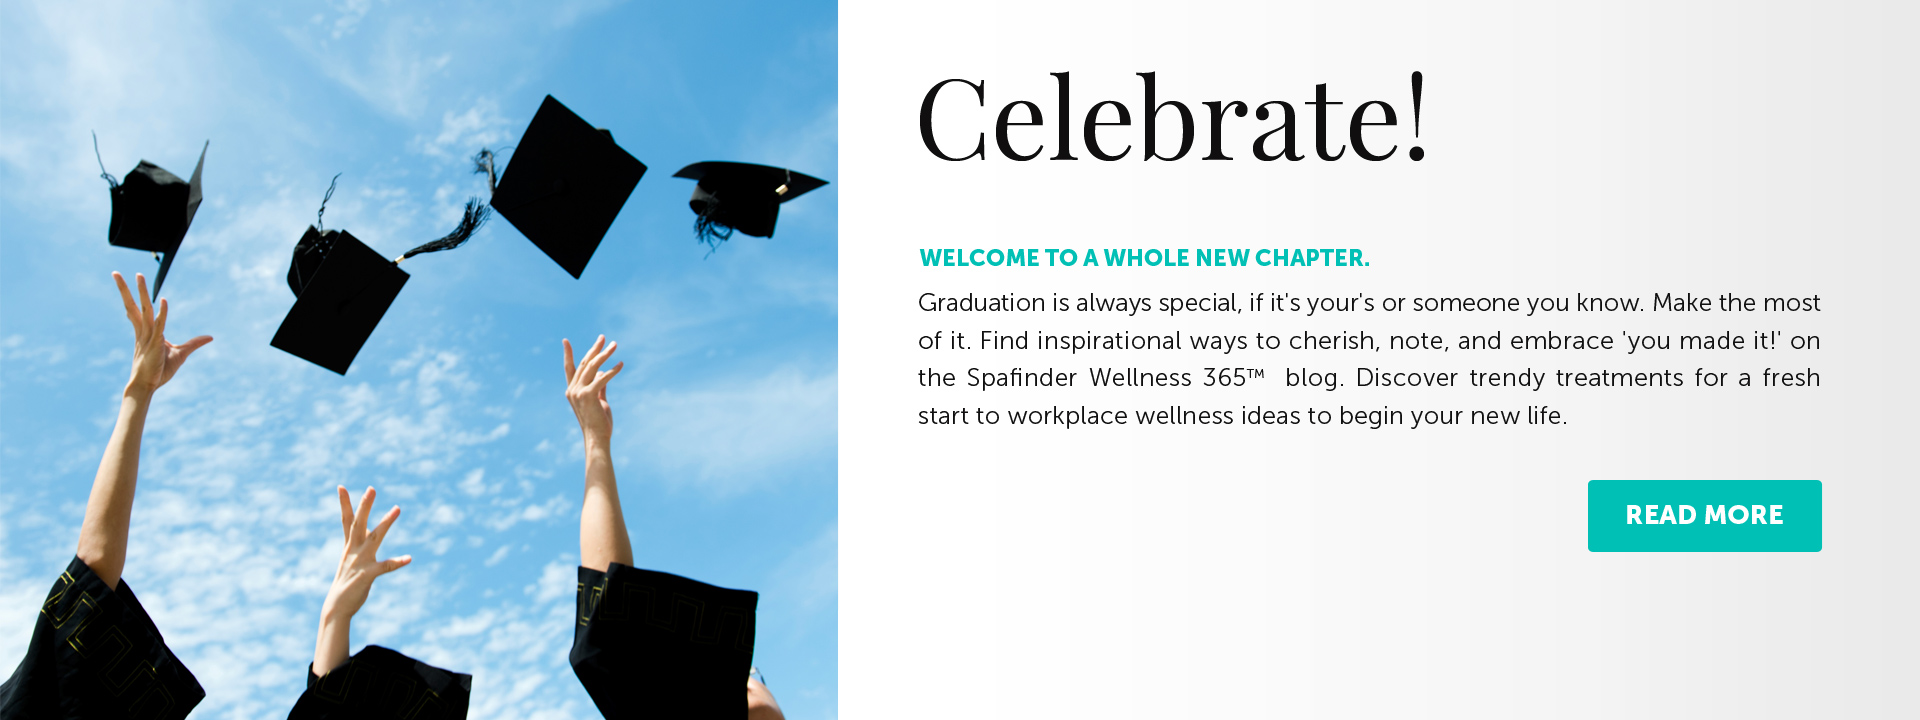 Celebrate! - Welcome to a Whole New Chapter